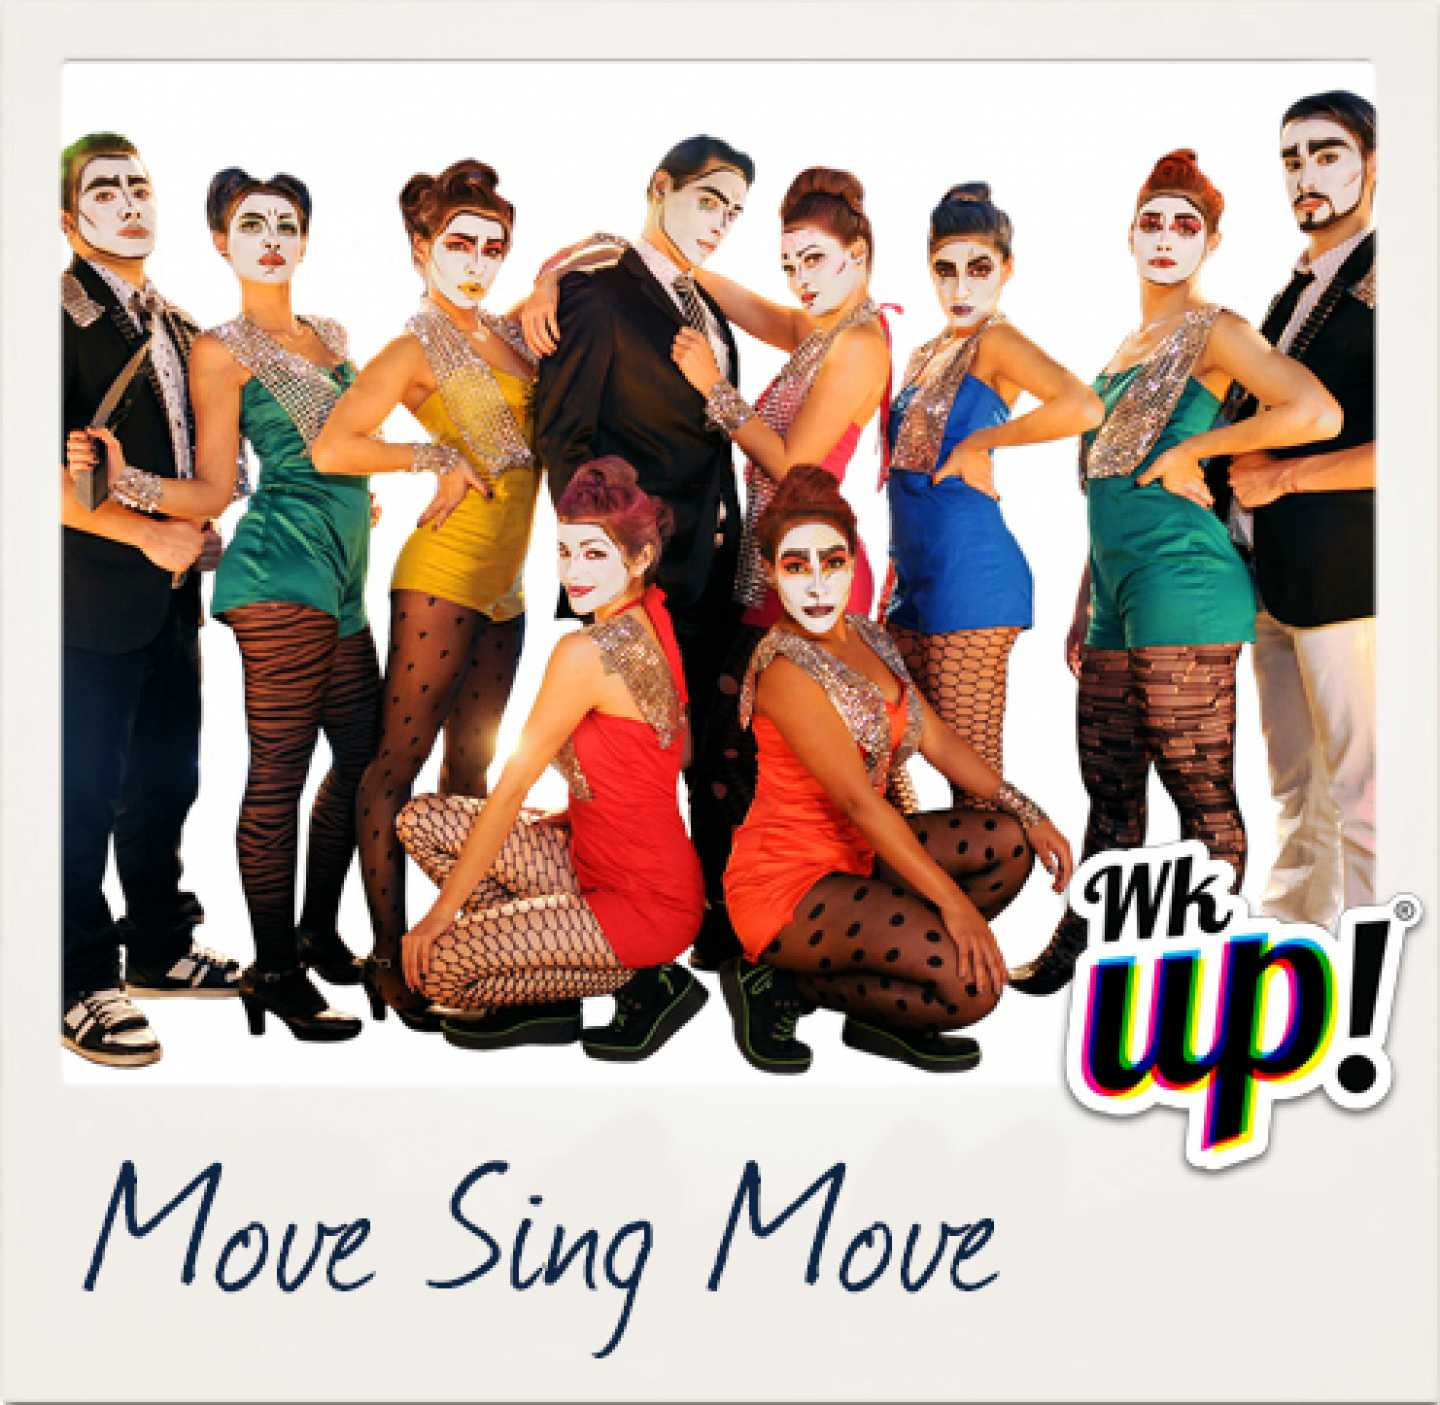 Move sing move